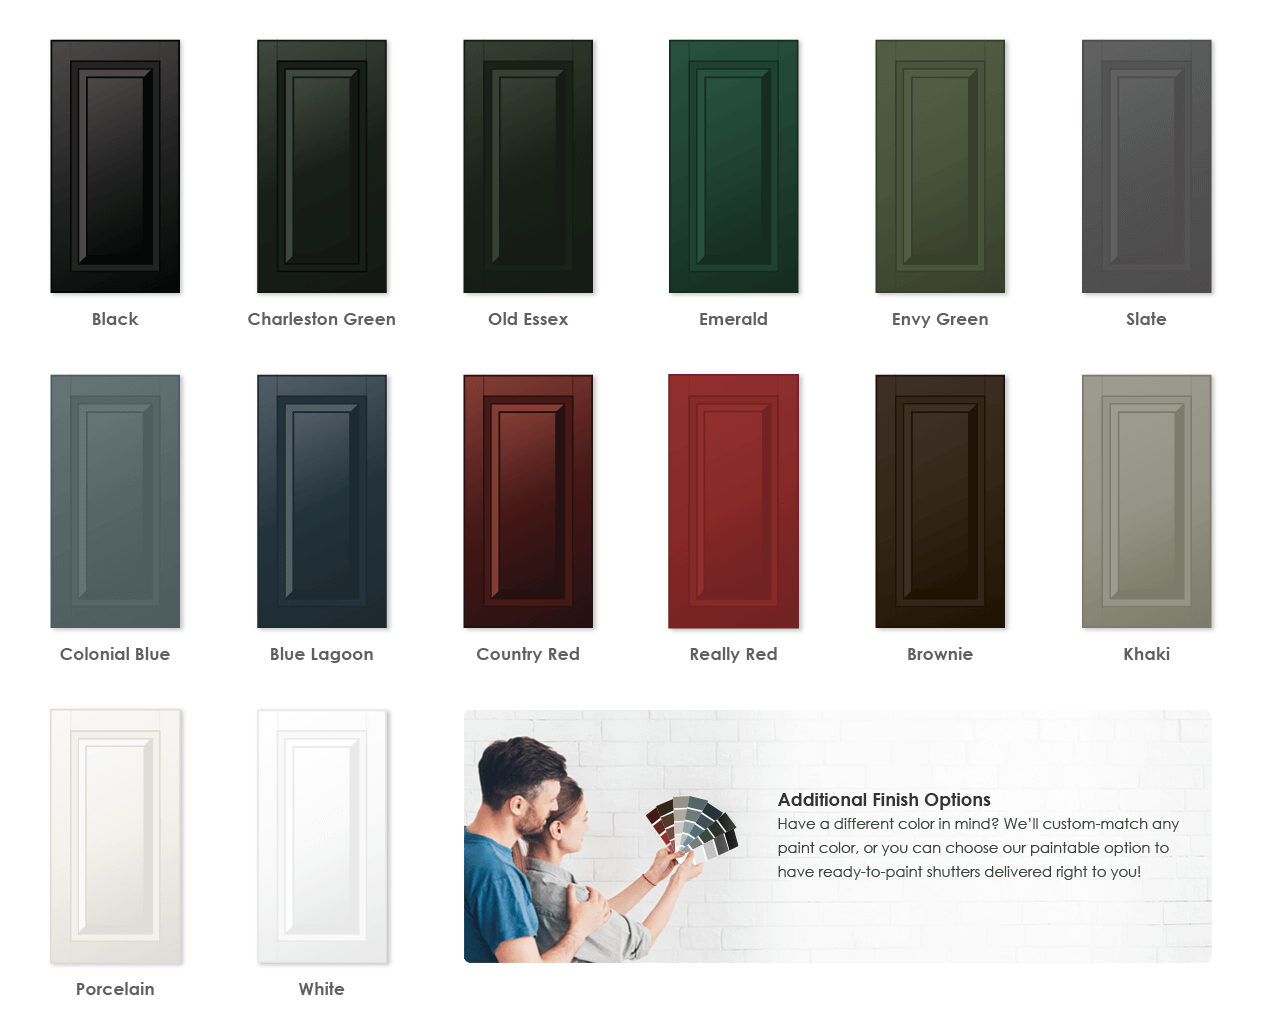 Adorned Openings offers a variety of wonderful paint color options for raised panel shutters